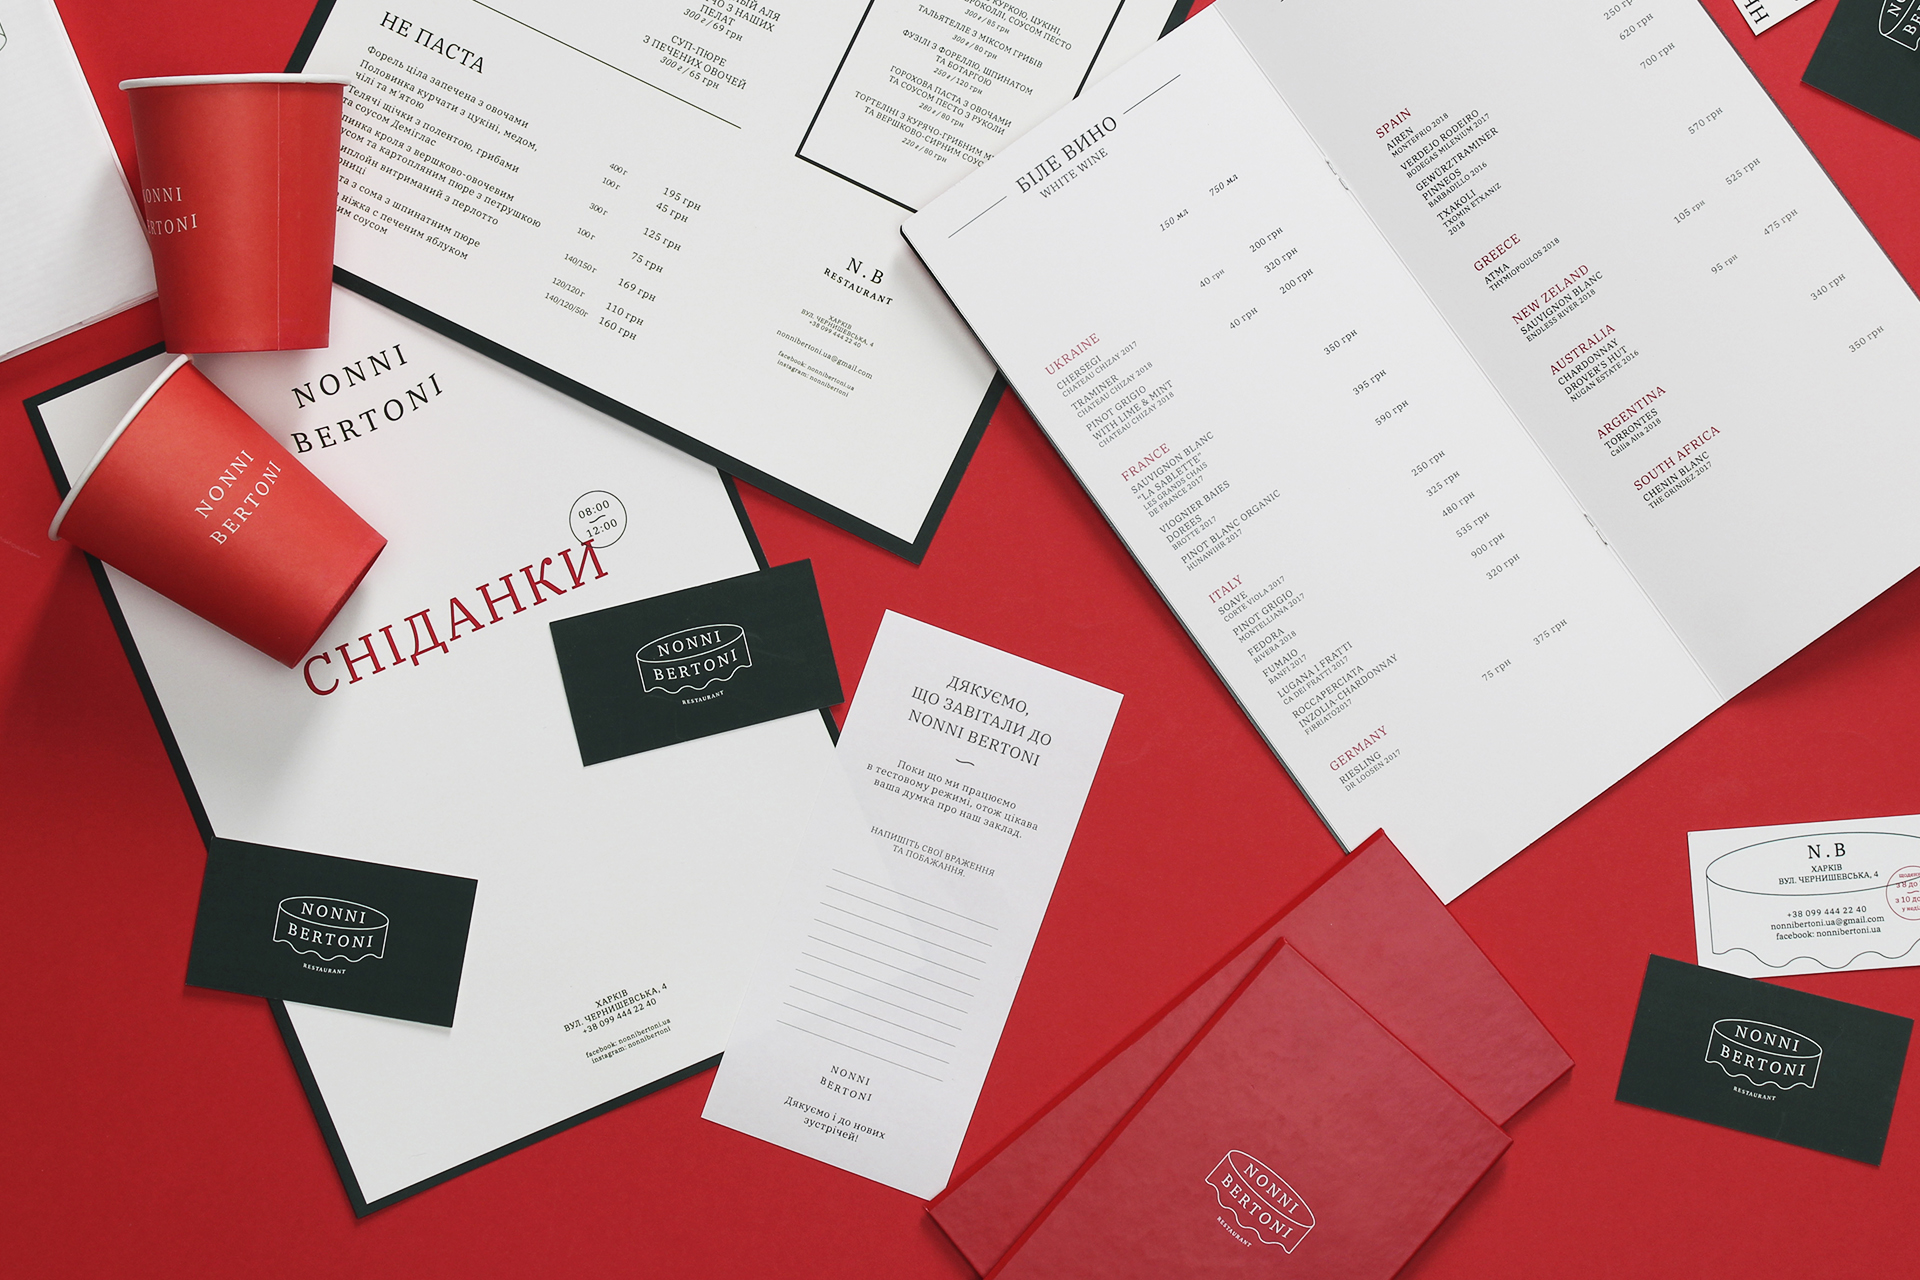 Identity for Nonni Bertoni Restaurant